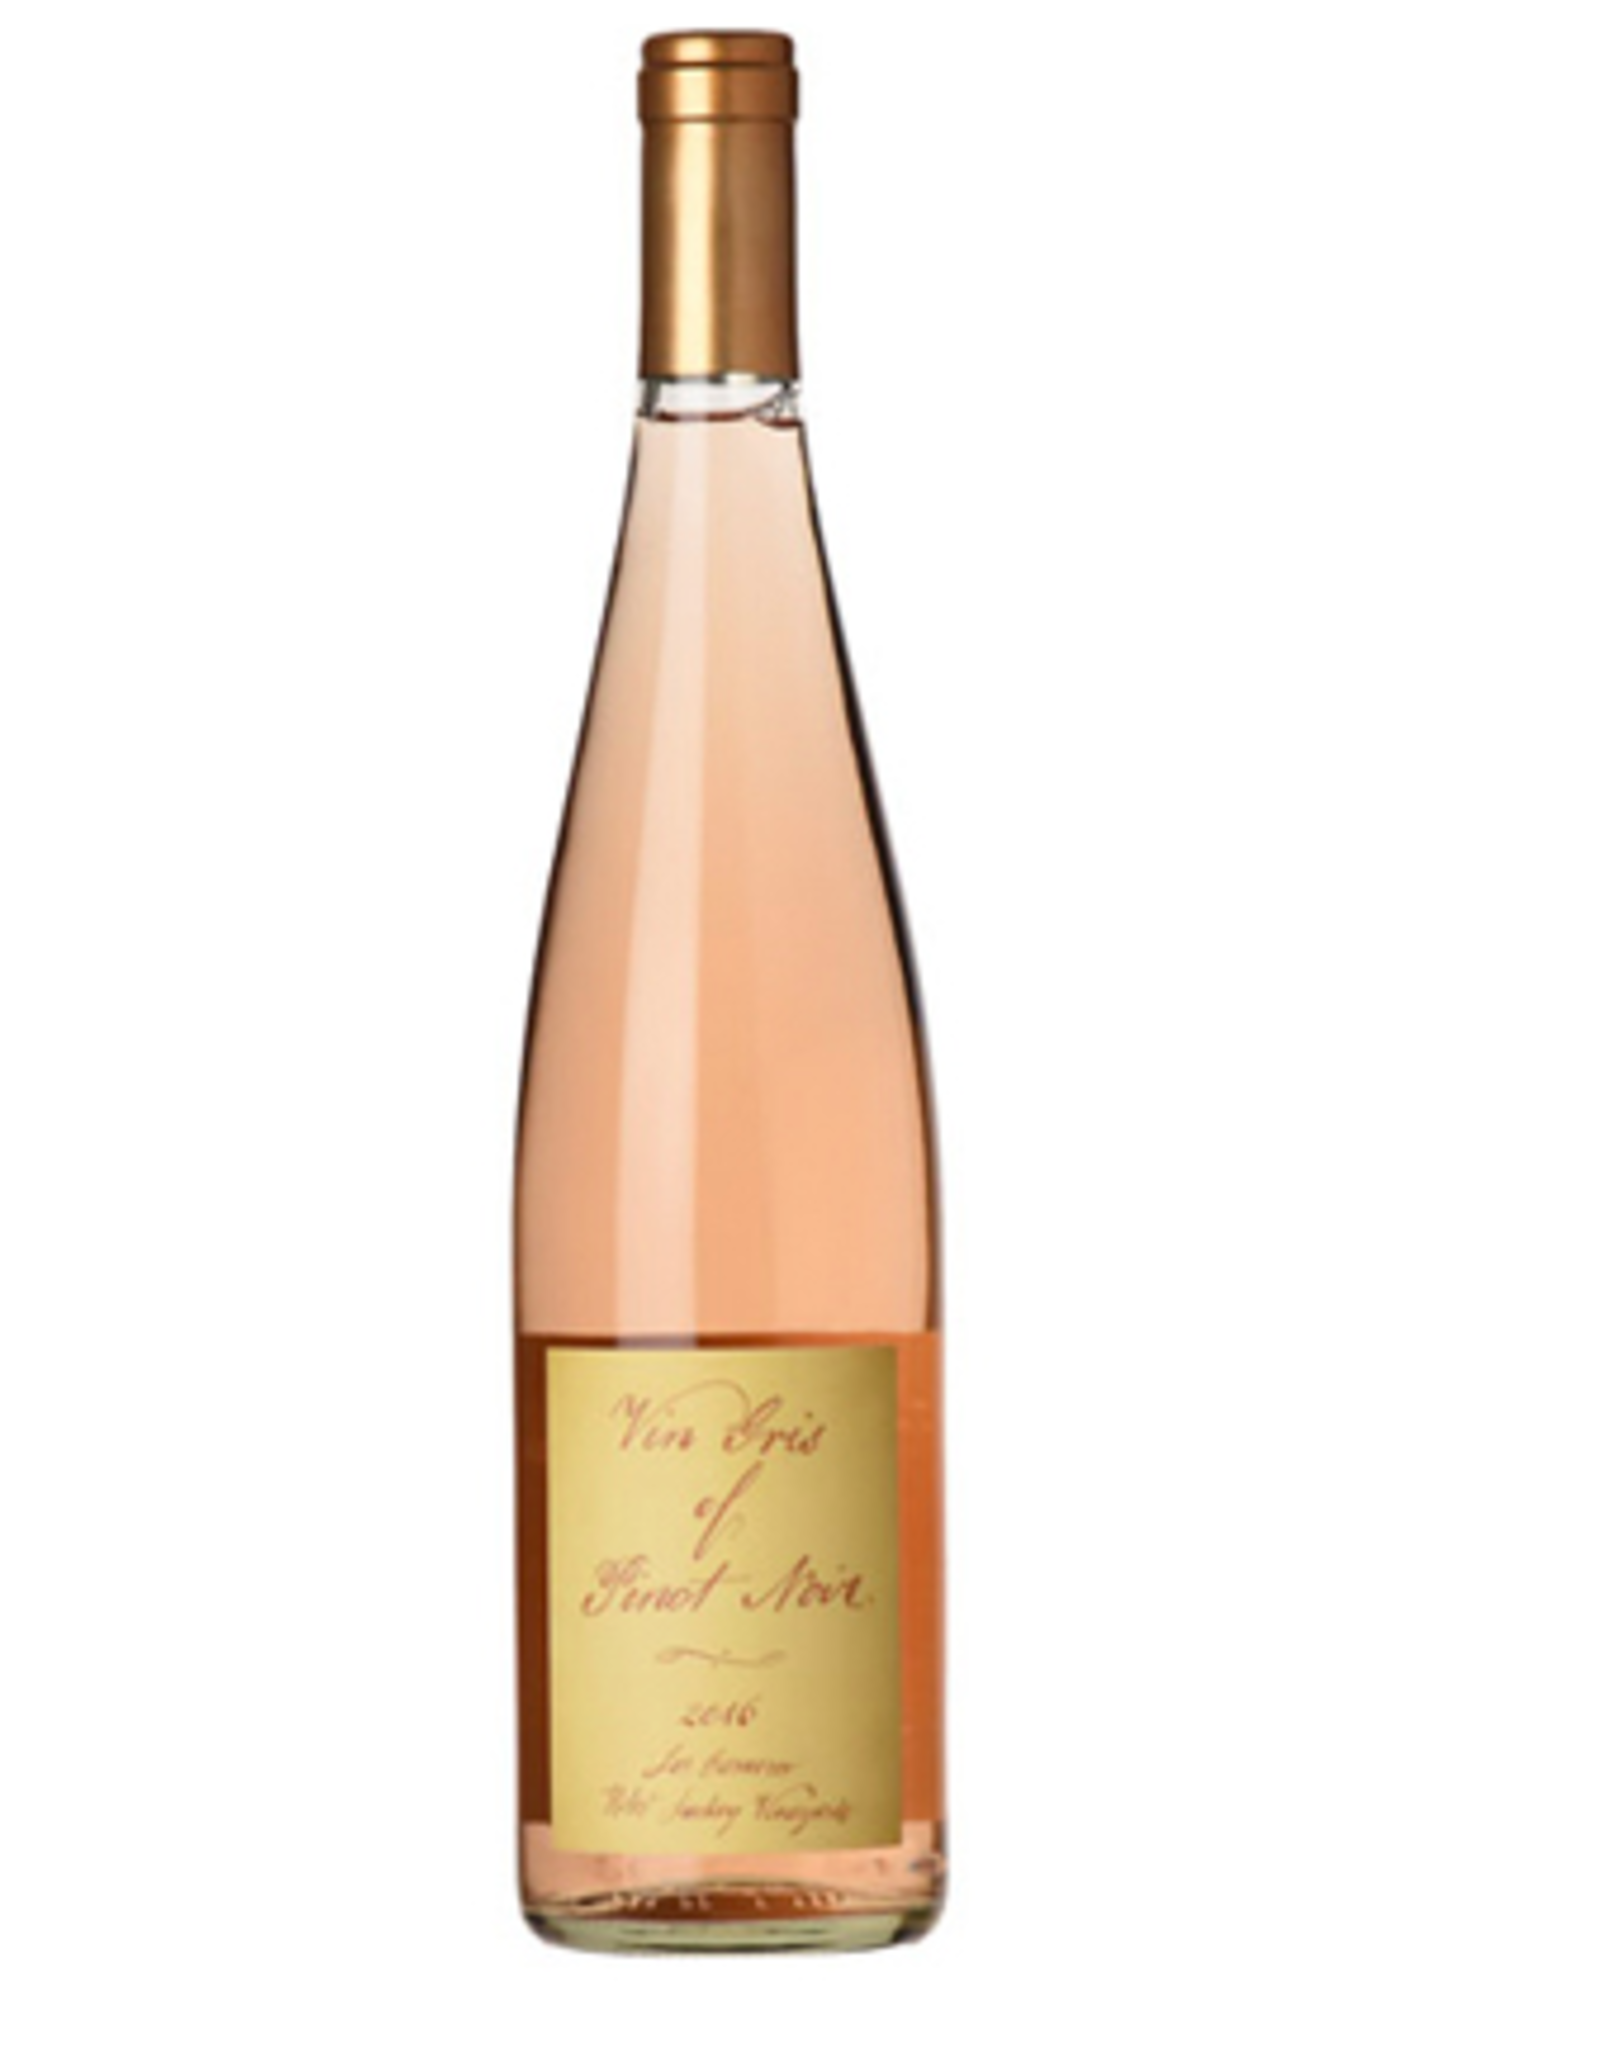 Robert Sinskey Vineyards Vin Gris Carneros 2019